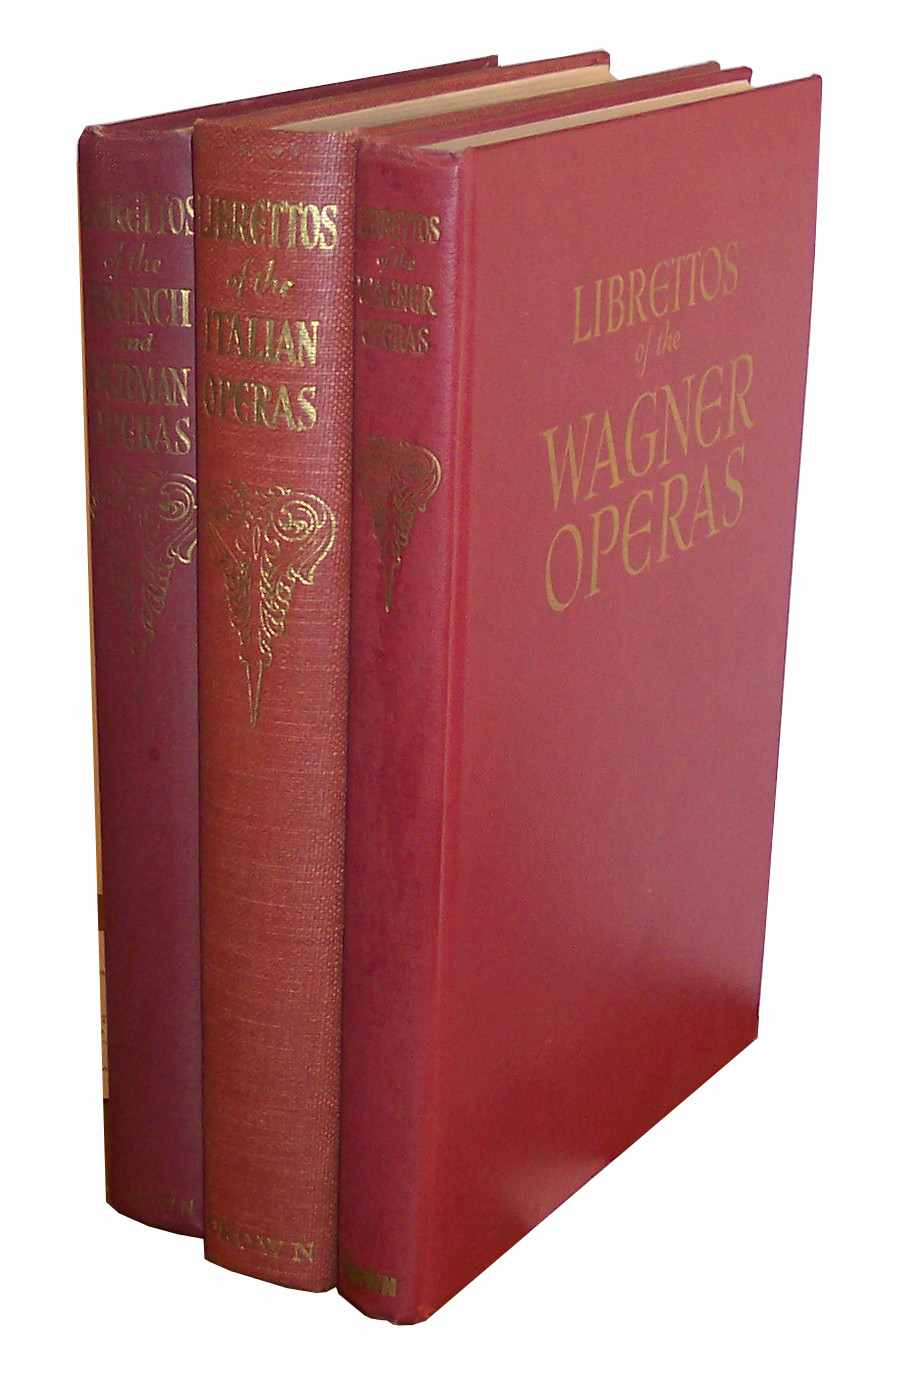 Image for The Authentic Librettos of the Wagner Operas The Authentic Librettos of the Italian Operas; the Authentic Librettos of the French and German Operas